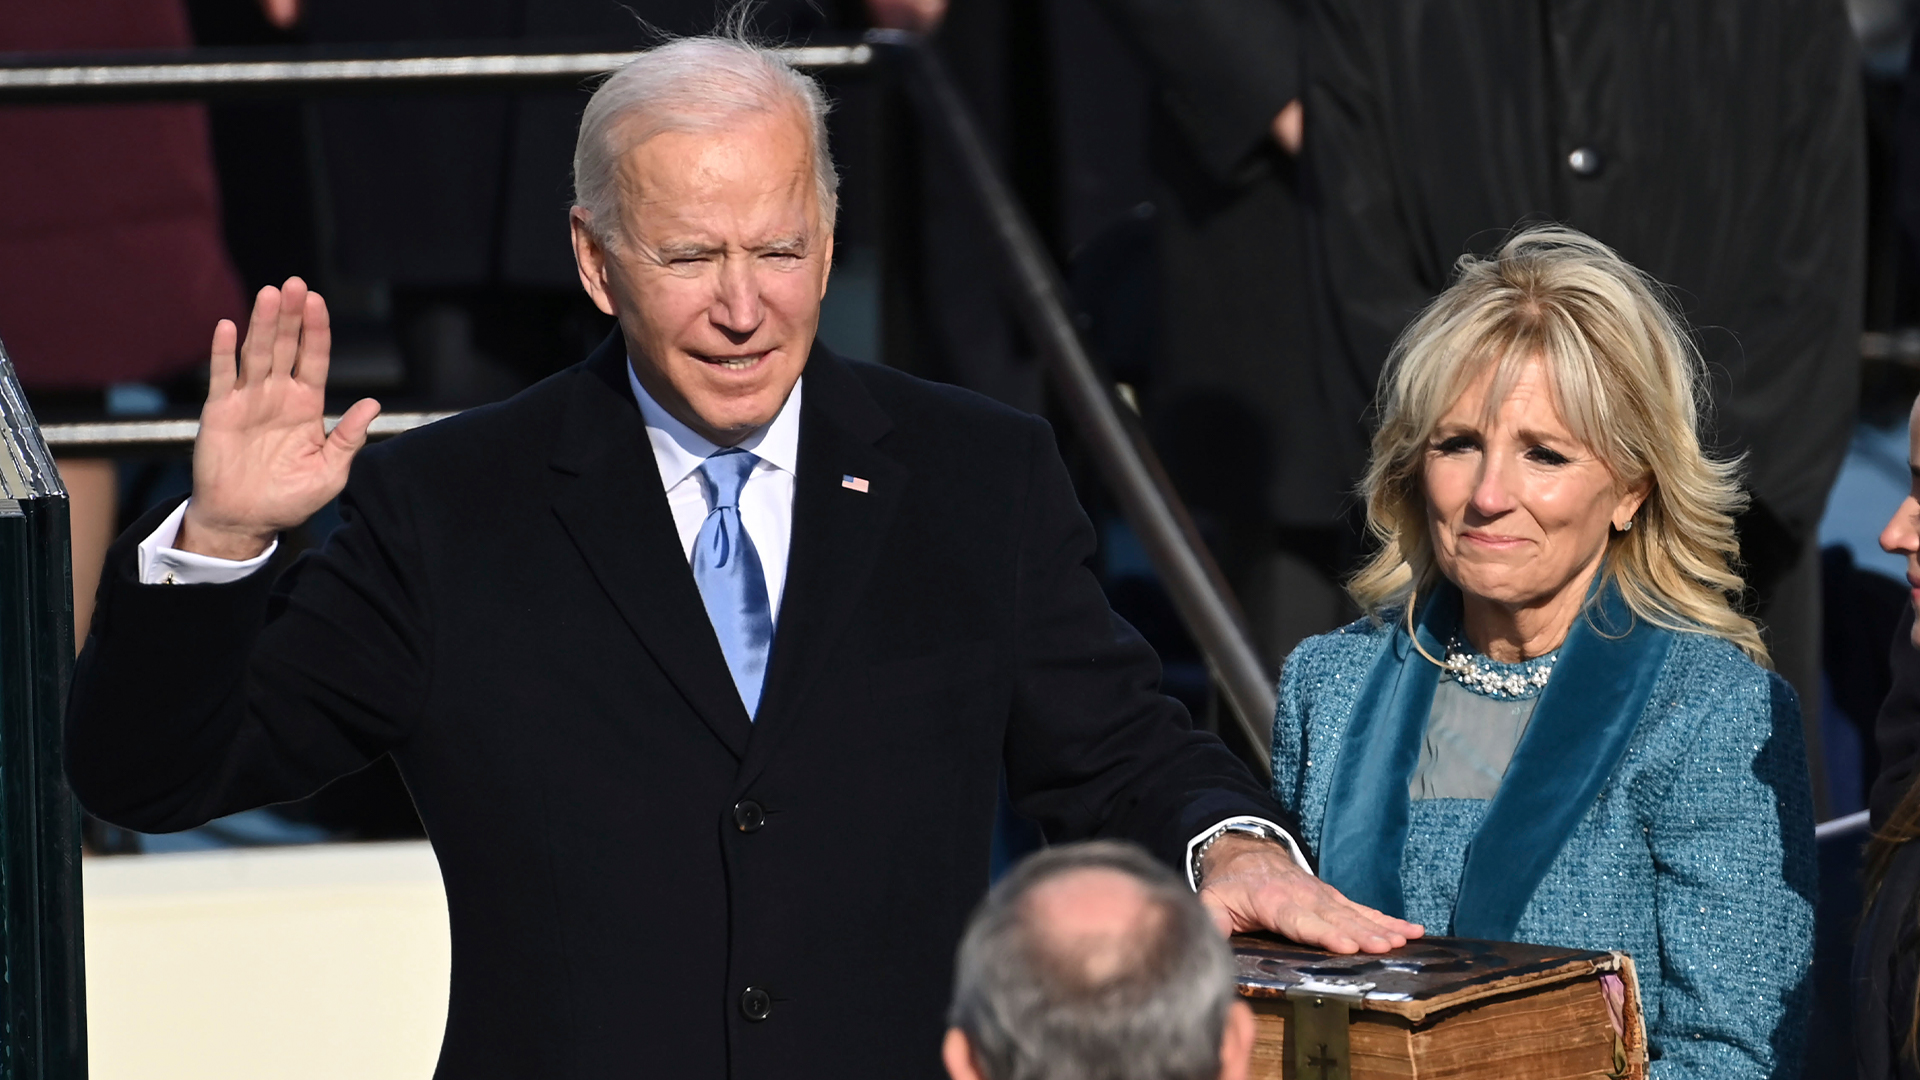 Inauguration Day: Biden in White House for 1st time as president | WFLA